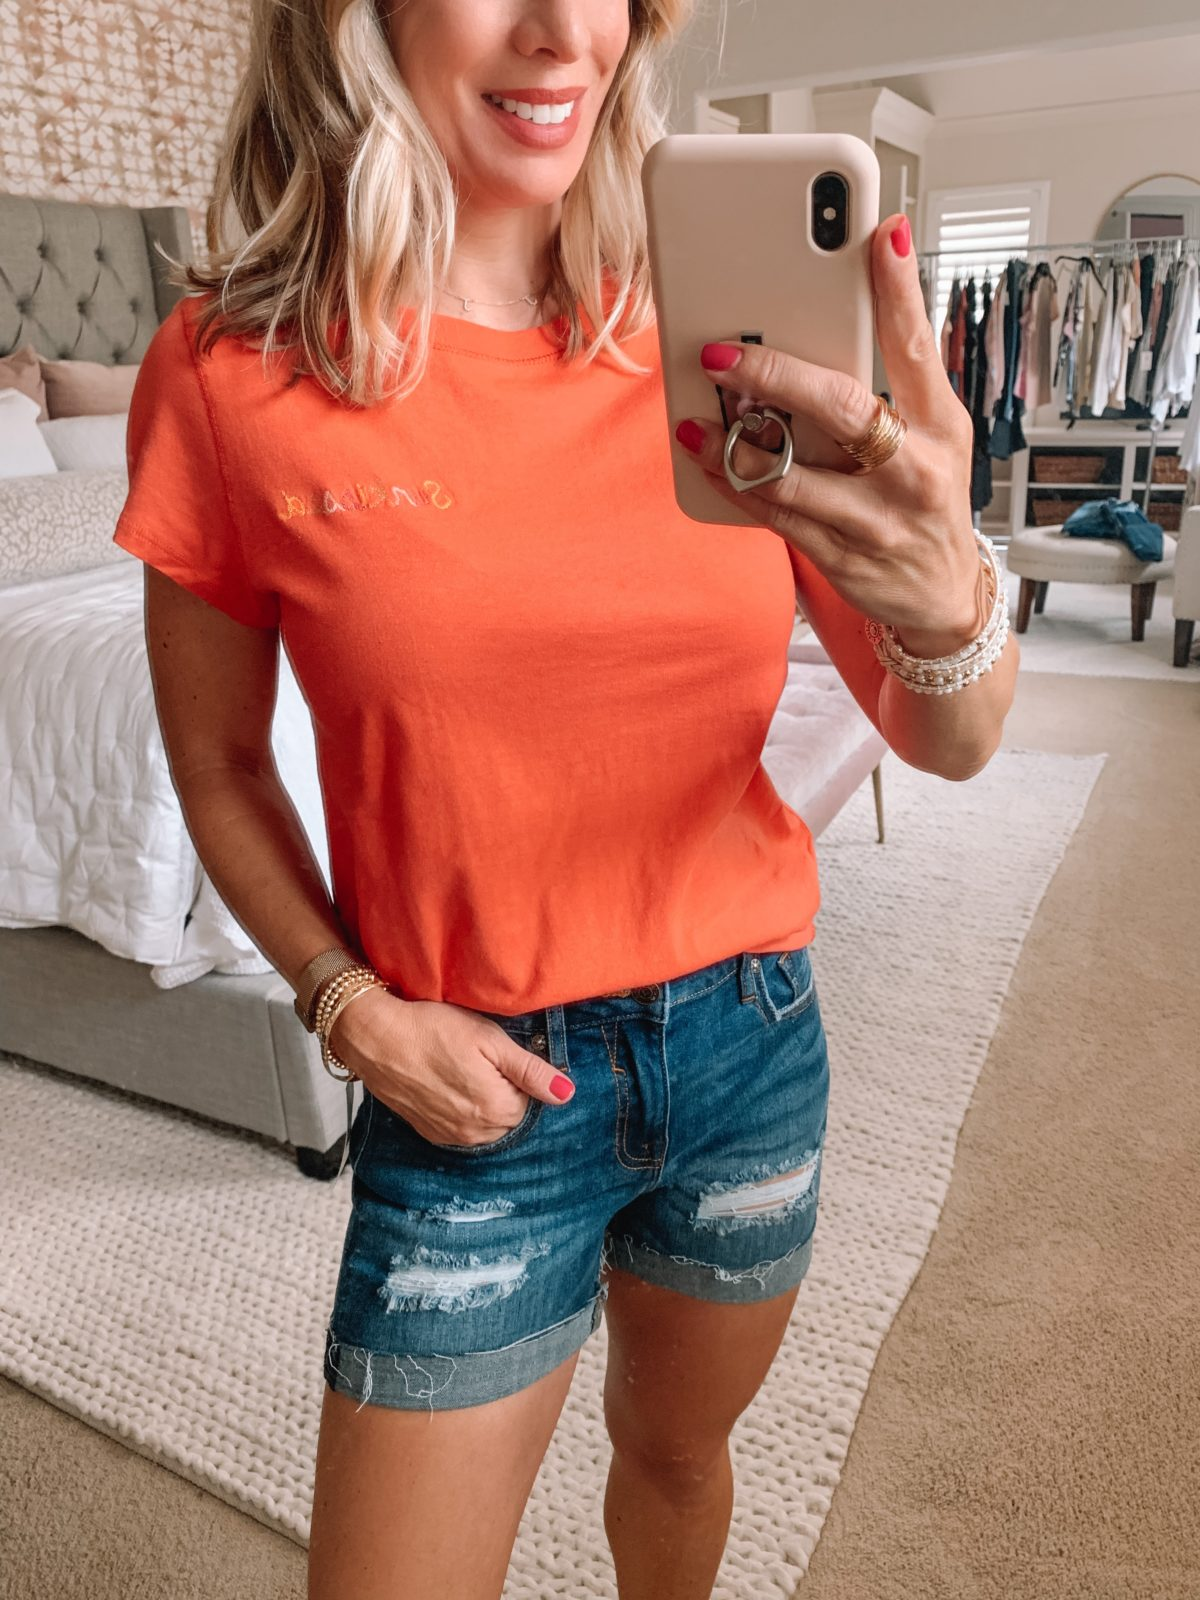 Dressing Room Finds Nordstrom and Target, Sunkissed Tee, Distressed Denim Shorts